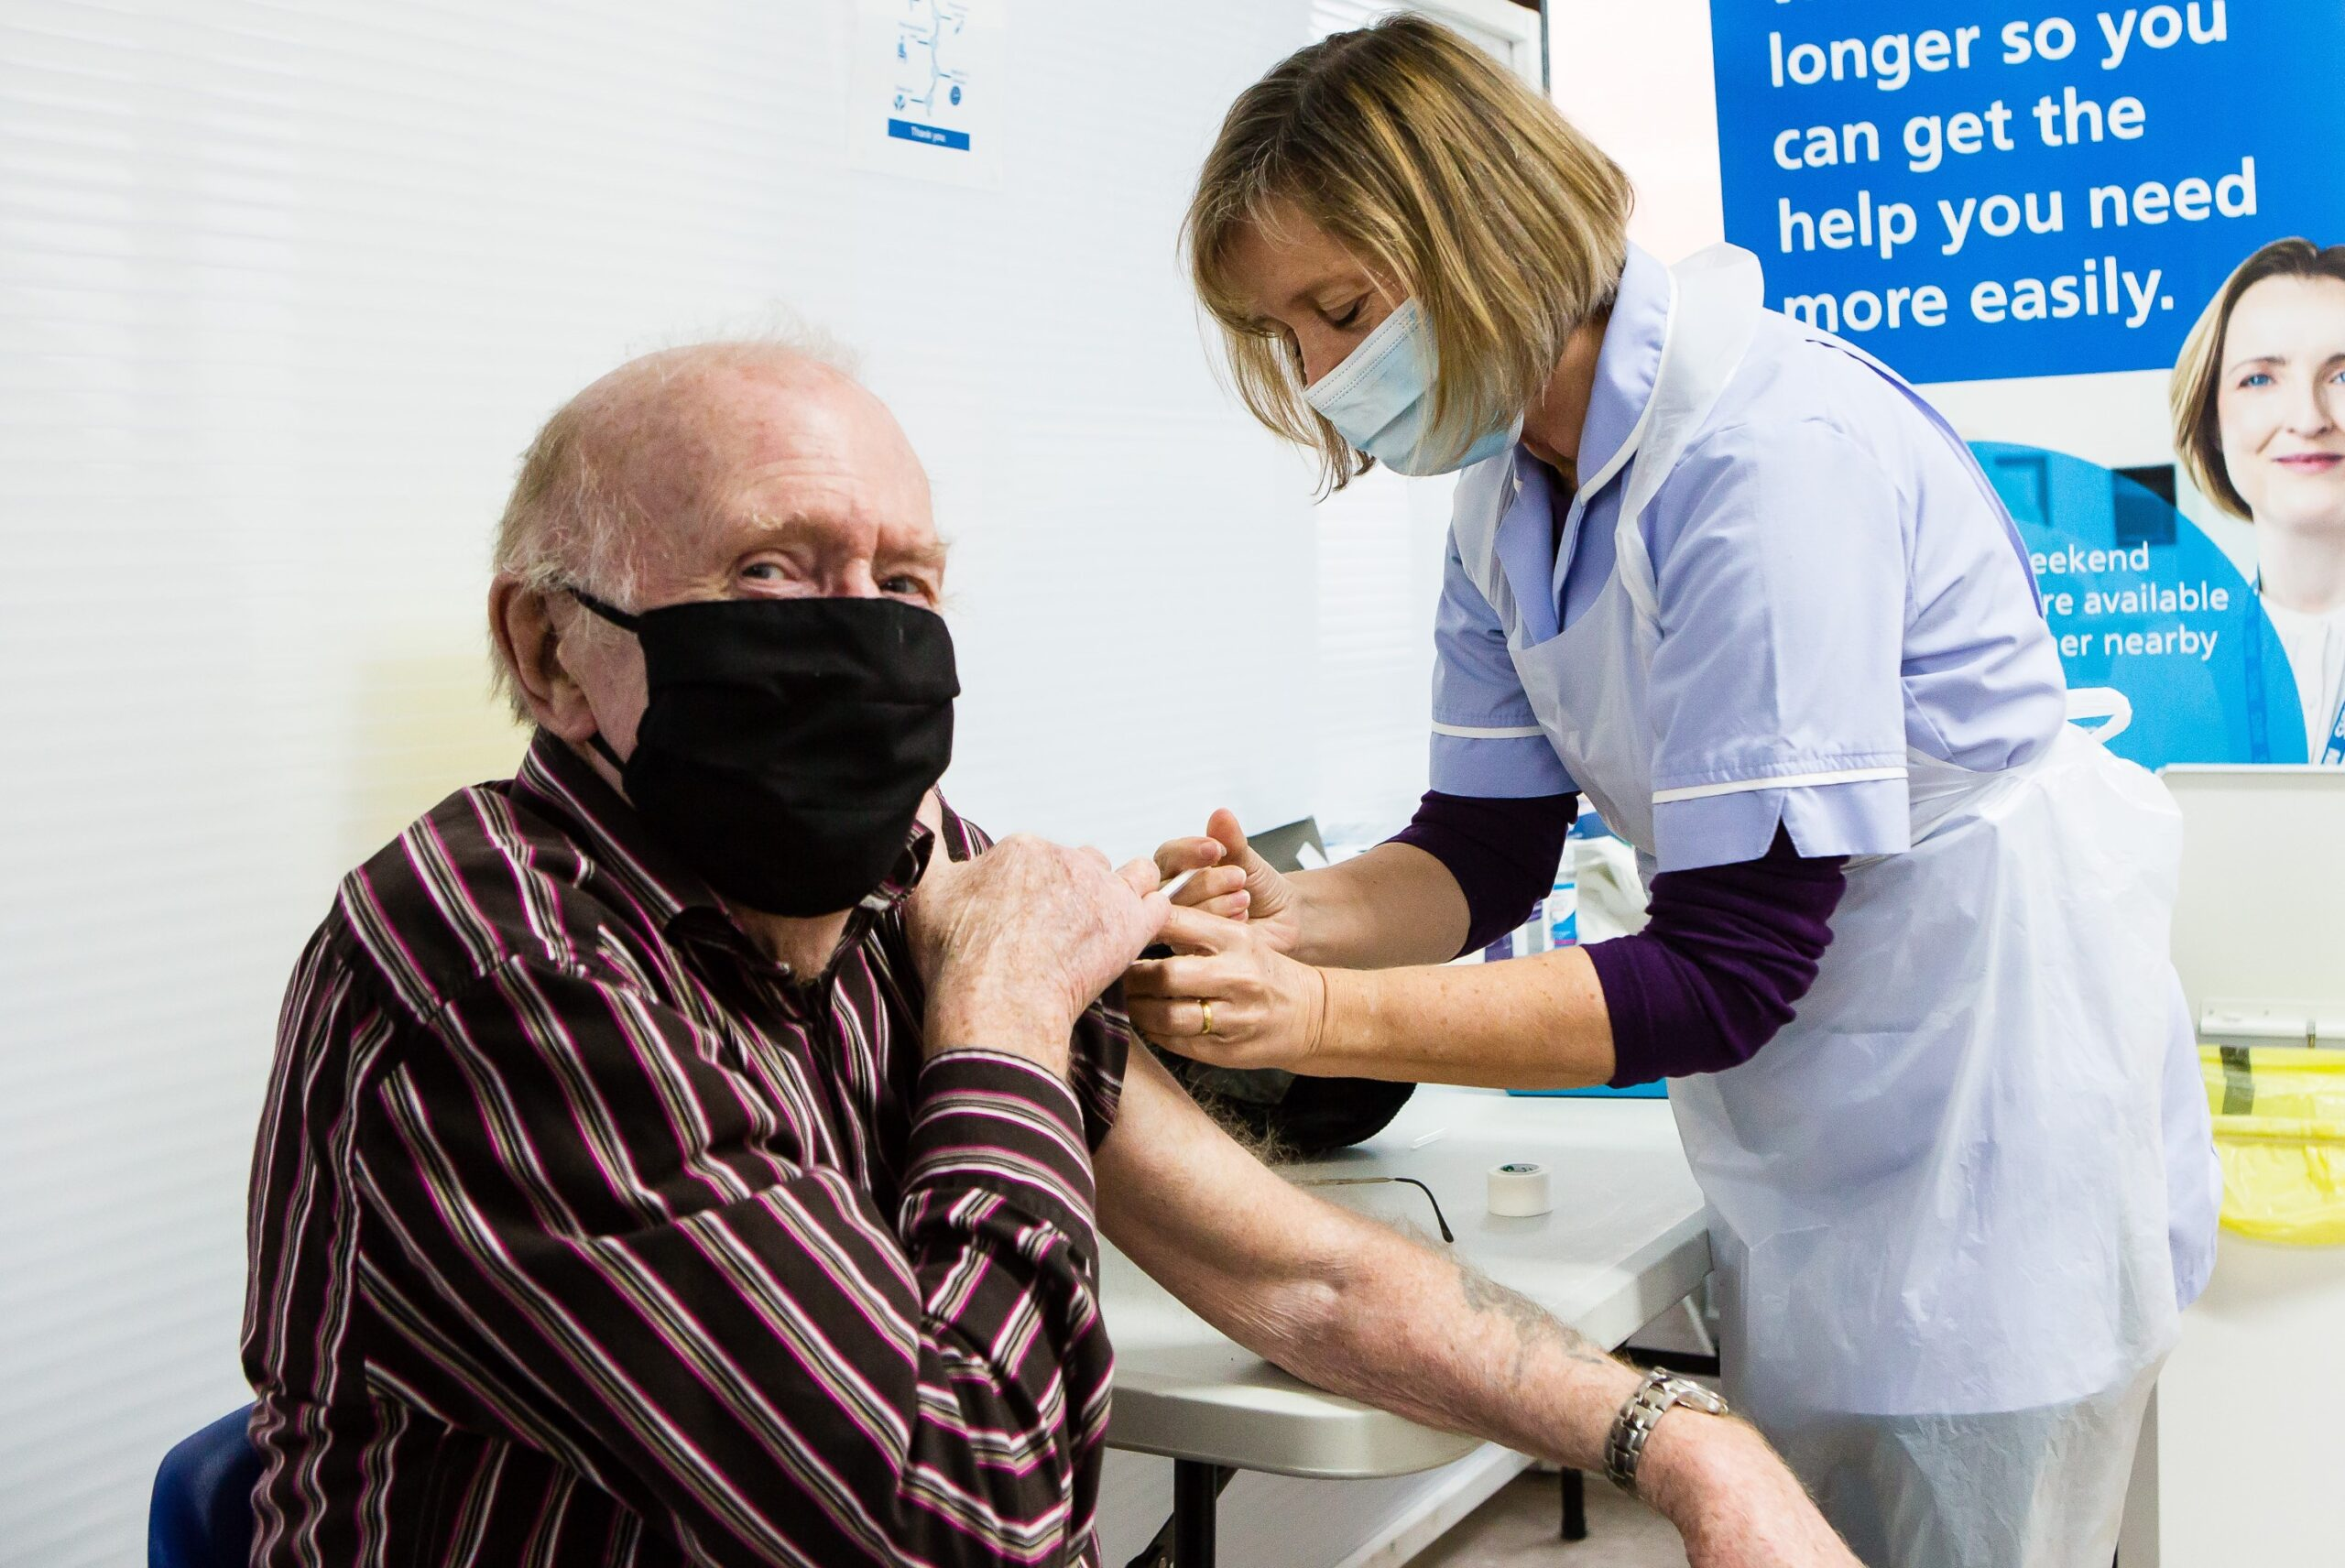 Next Phase of Vaccination Gets Underway as North Kirklees Patients Receive Second COVID-19 Jab